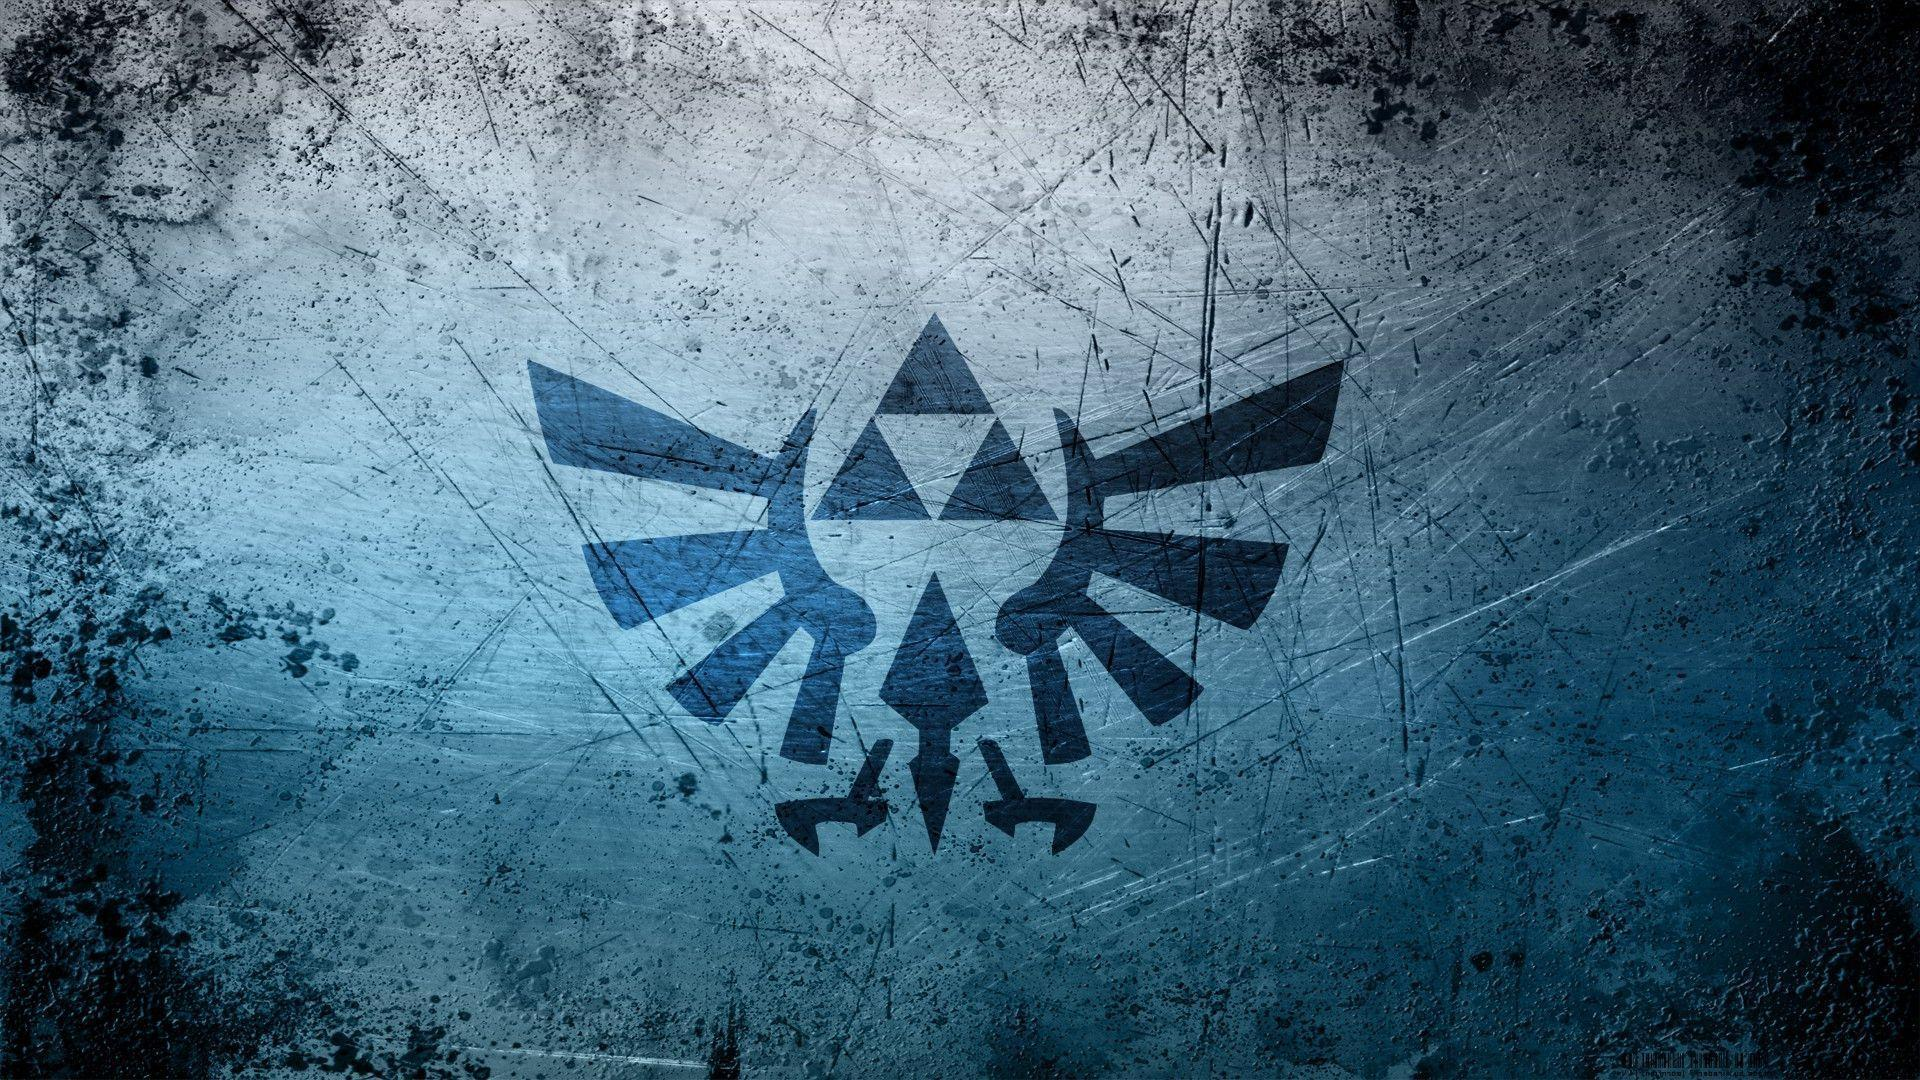 hd zelda wallpapers - photo #18